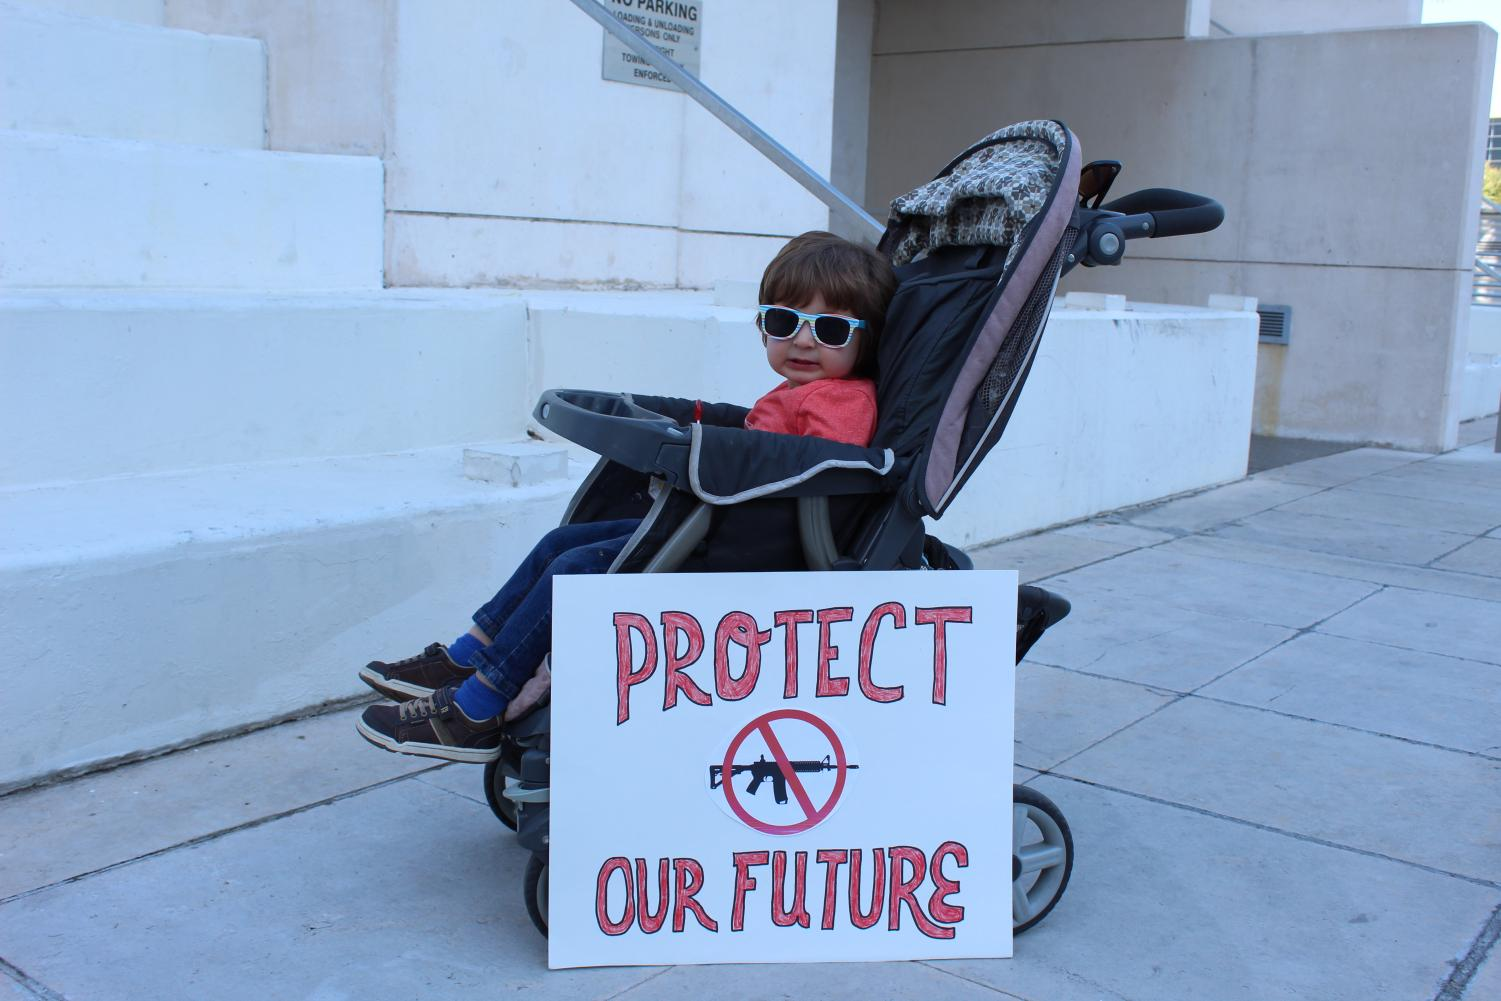 A mom places her sign in front of her child's stroller to add some emphasis on why she marches.